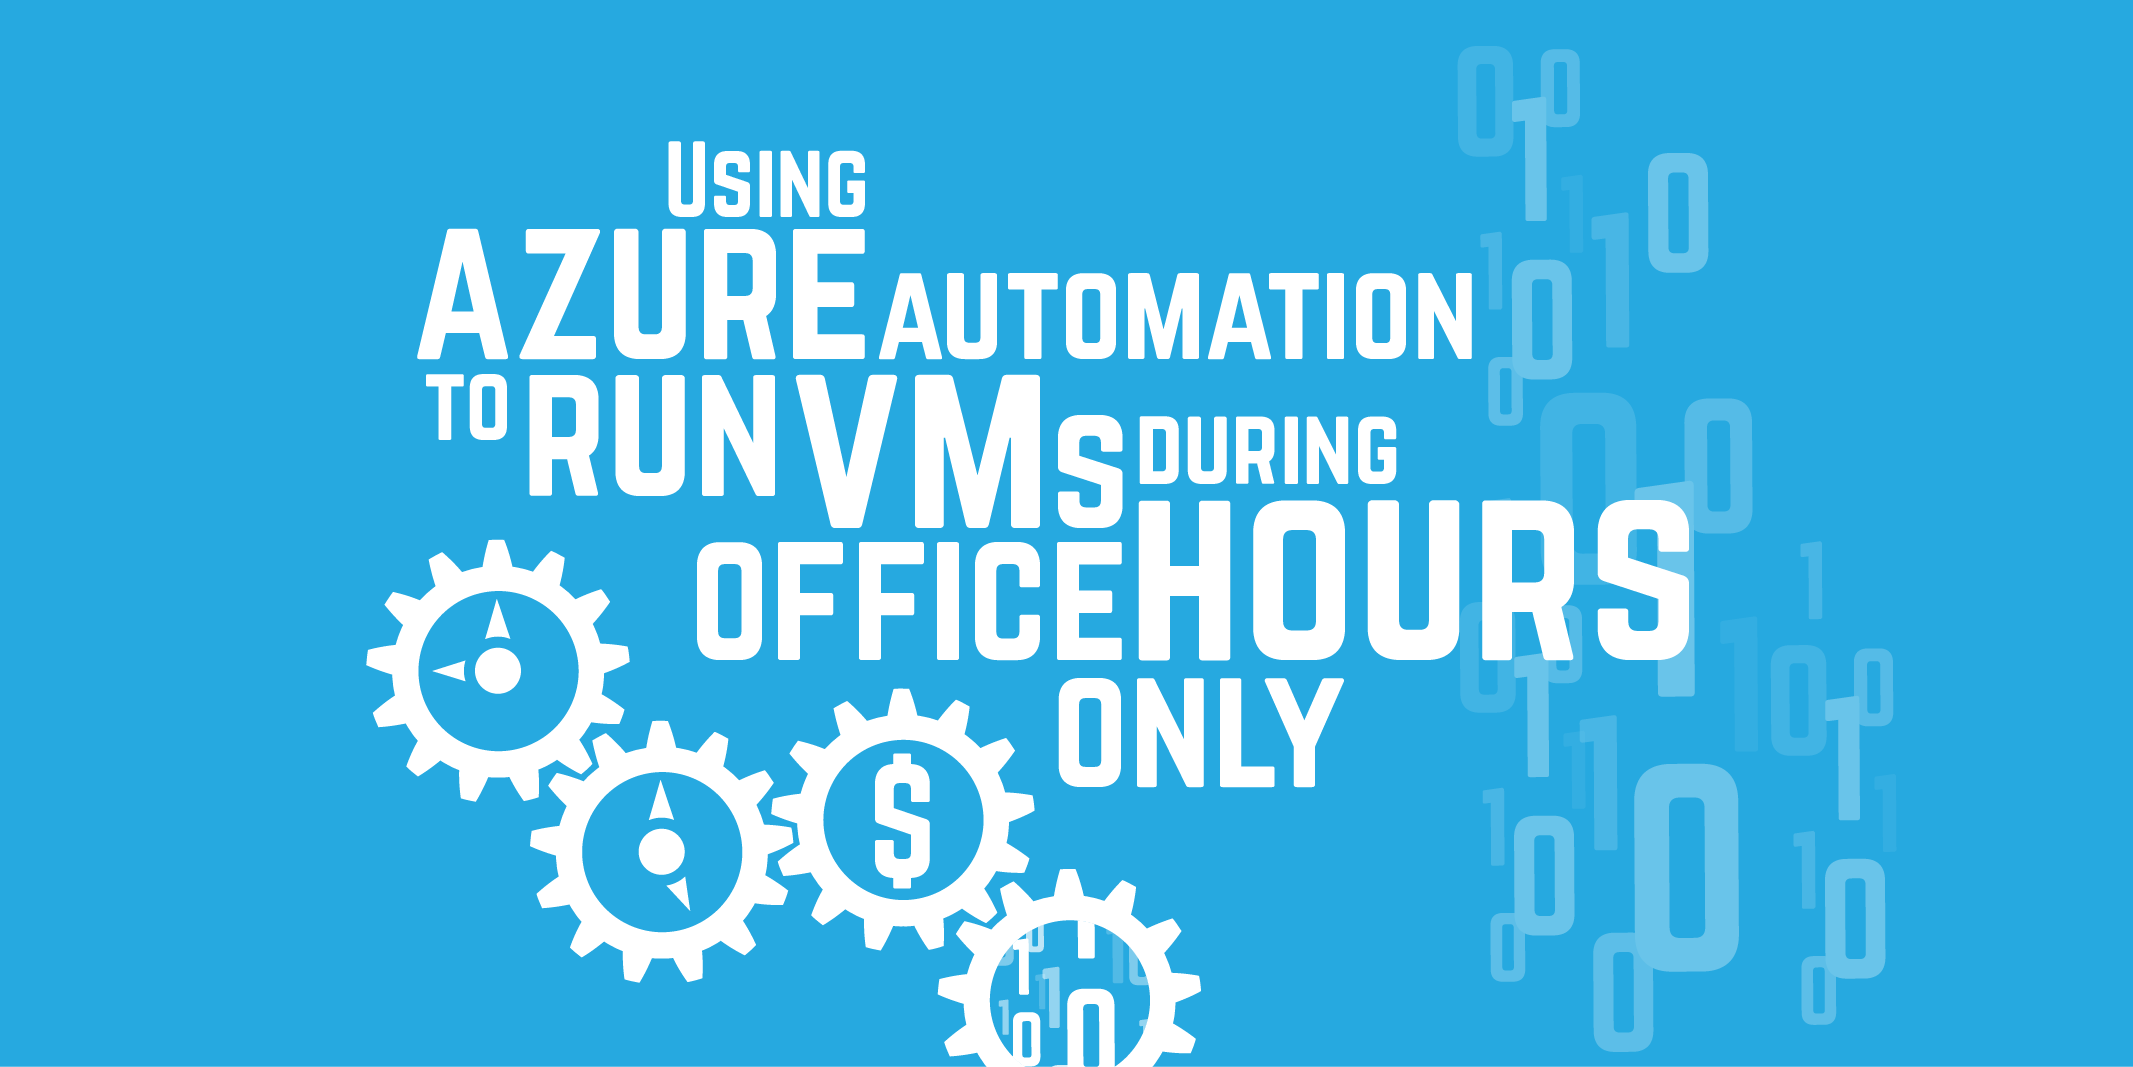 Using Azure Automation to run VMs during office hours only